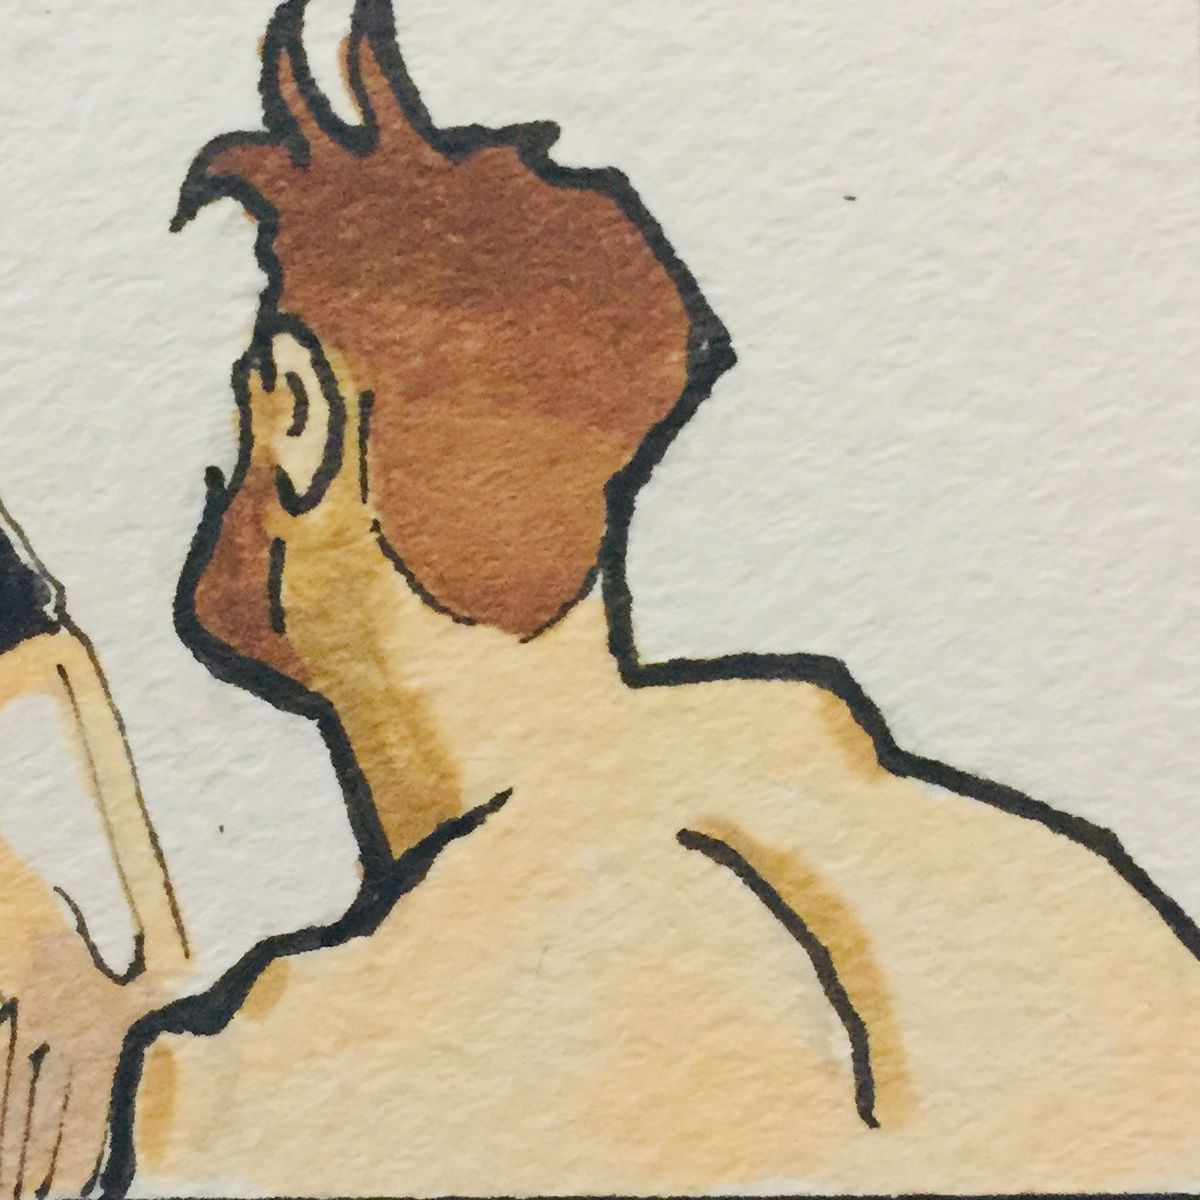 MMA Squared: TJ Dillashaw's reinvention and how to market Gregor Gillespie